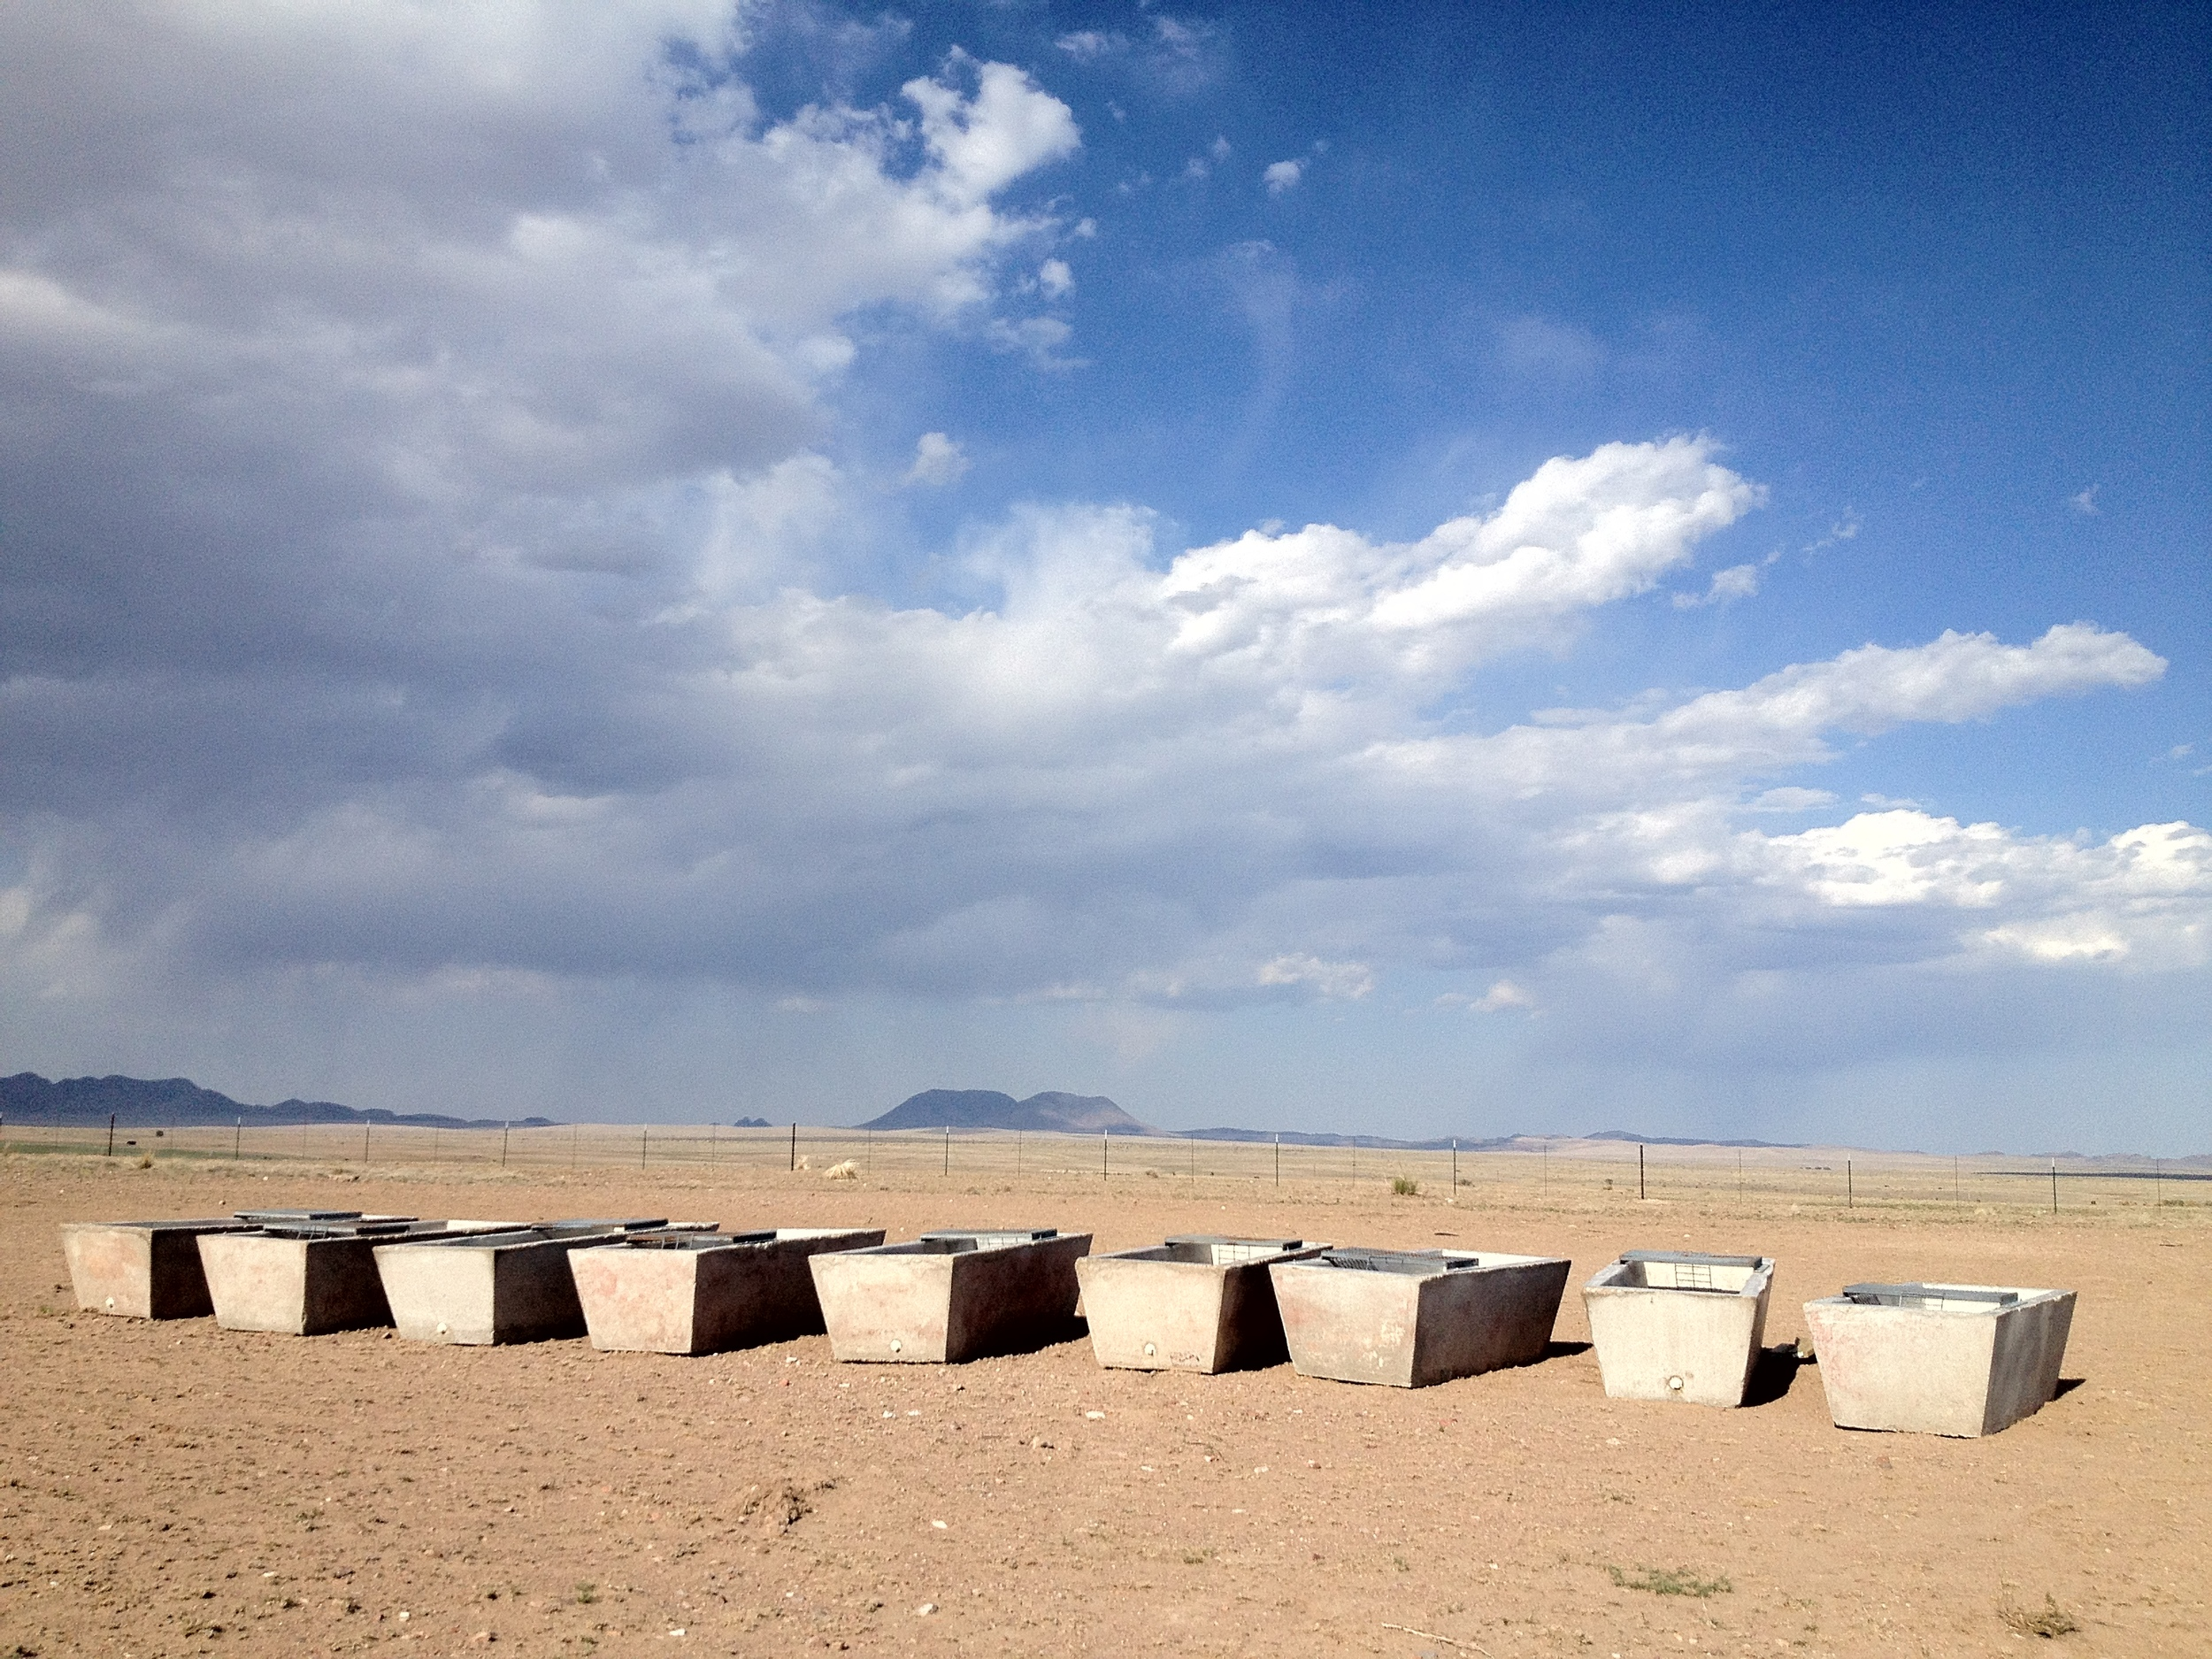 West Texas sky. These cisterns almost seem like an installation, but they are actually part of a ranch.